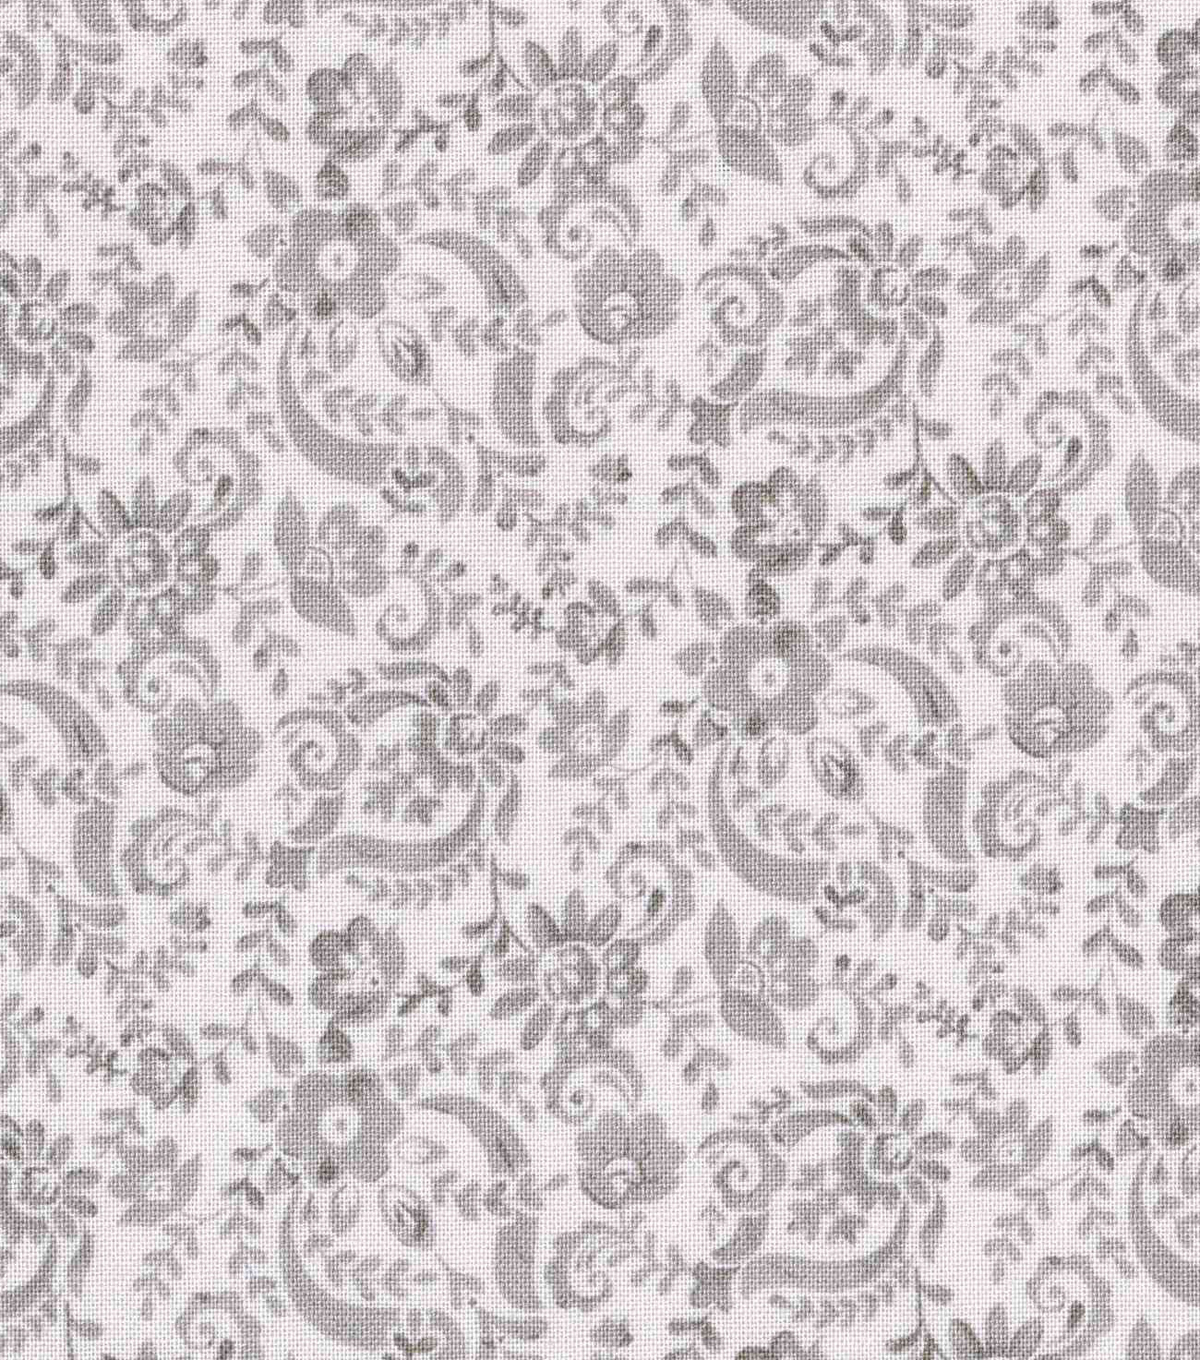 Keepsake Calico Cotton Fabric -Gray Floral Scroll